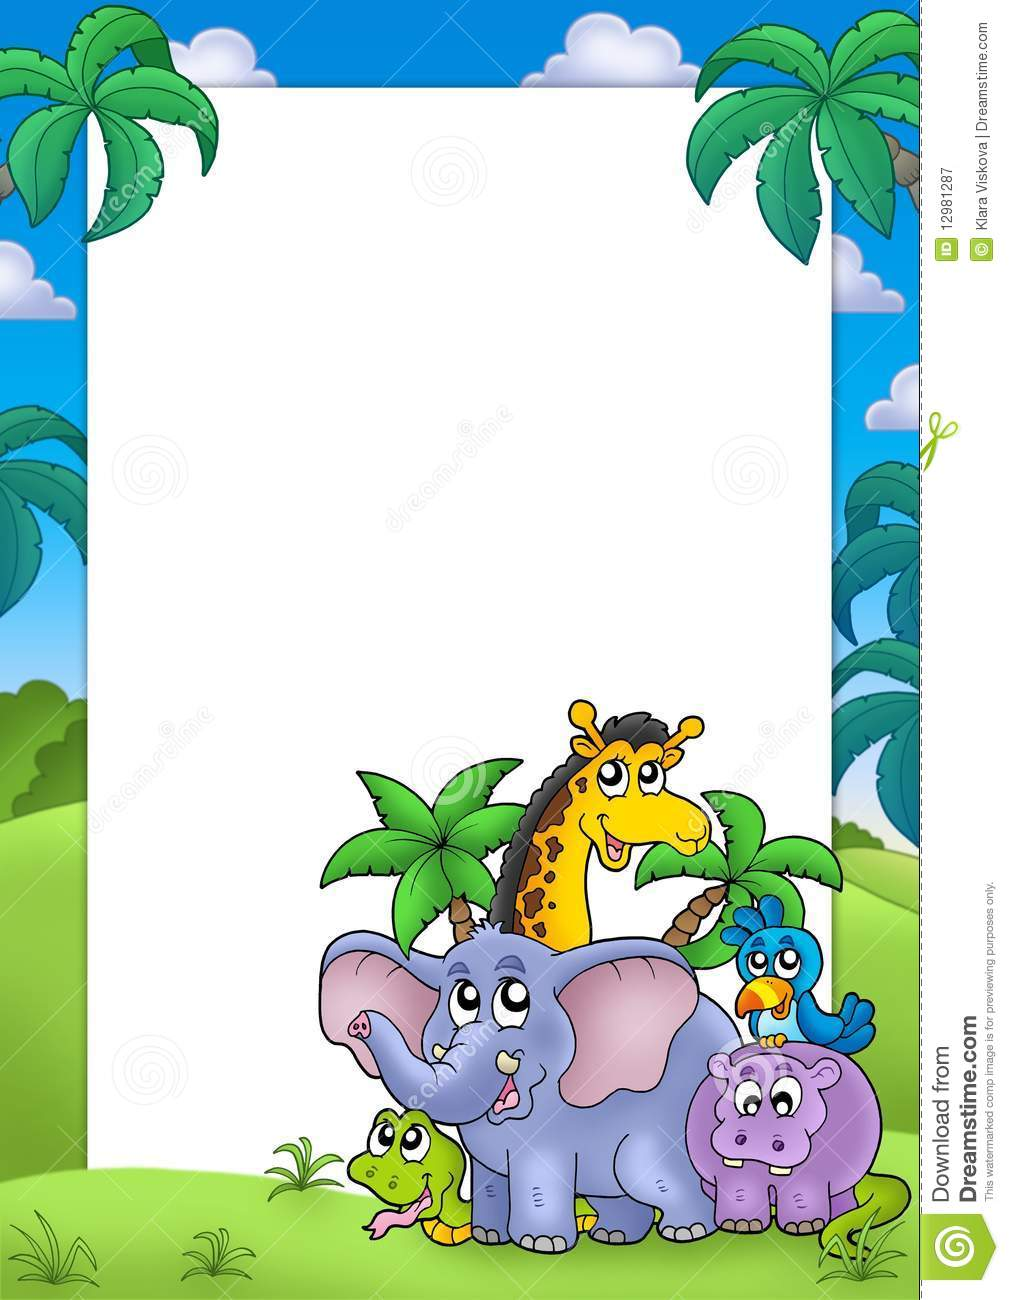 african frame with group of animals royalty free stock free elephant clipart for a boy baby shower free elephant clipart for a boy baby shower